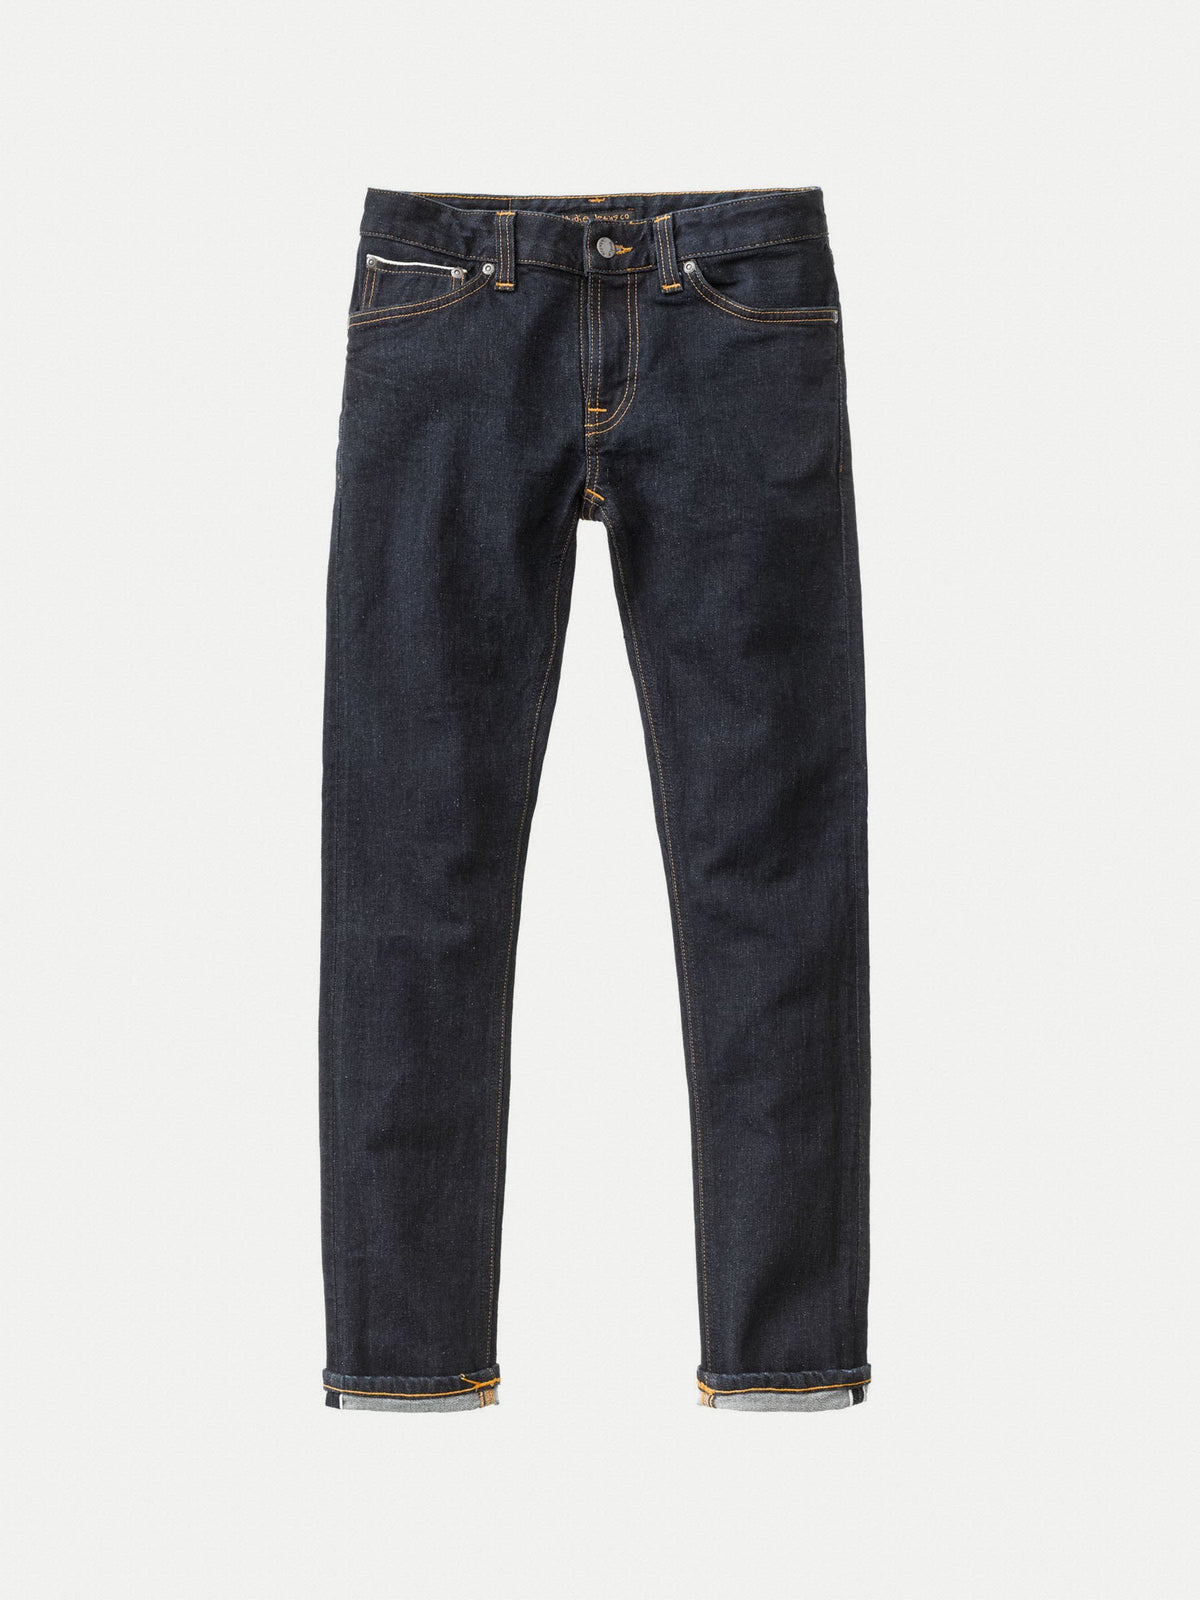 Skinny Lin | 11.5 oz | Rinse Selvedge Stretch